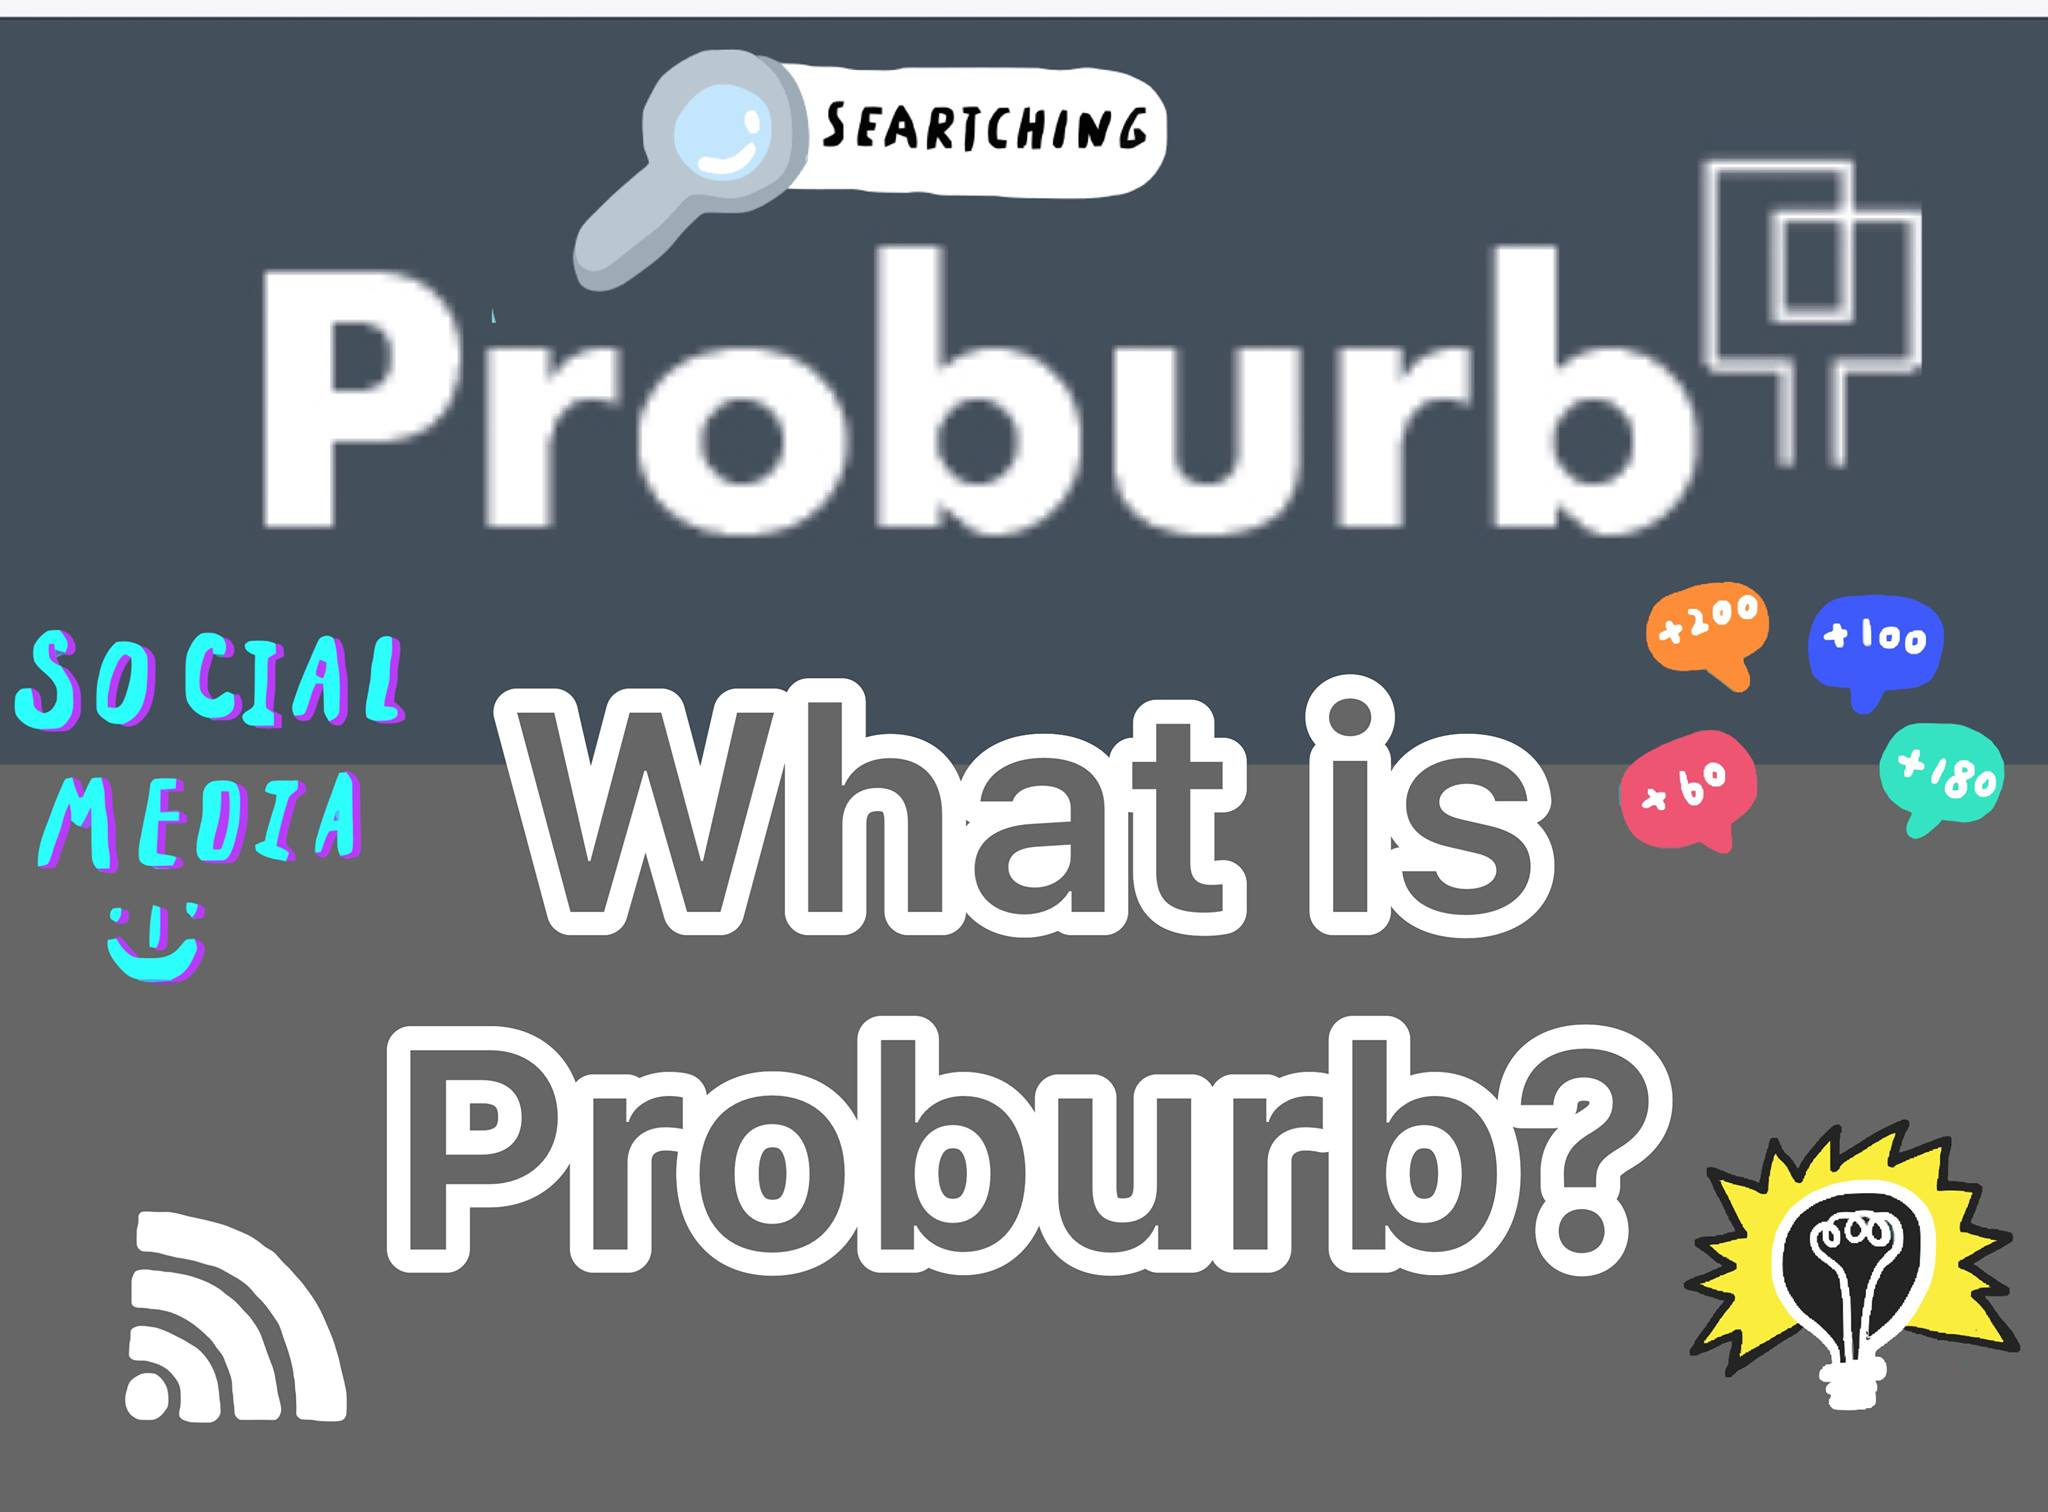 Join Proburb